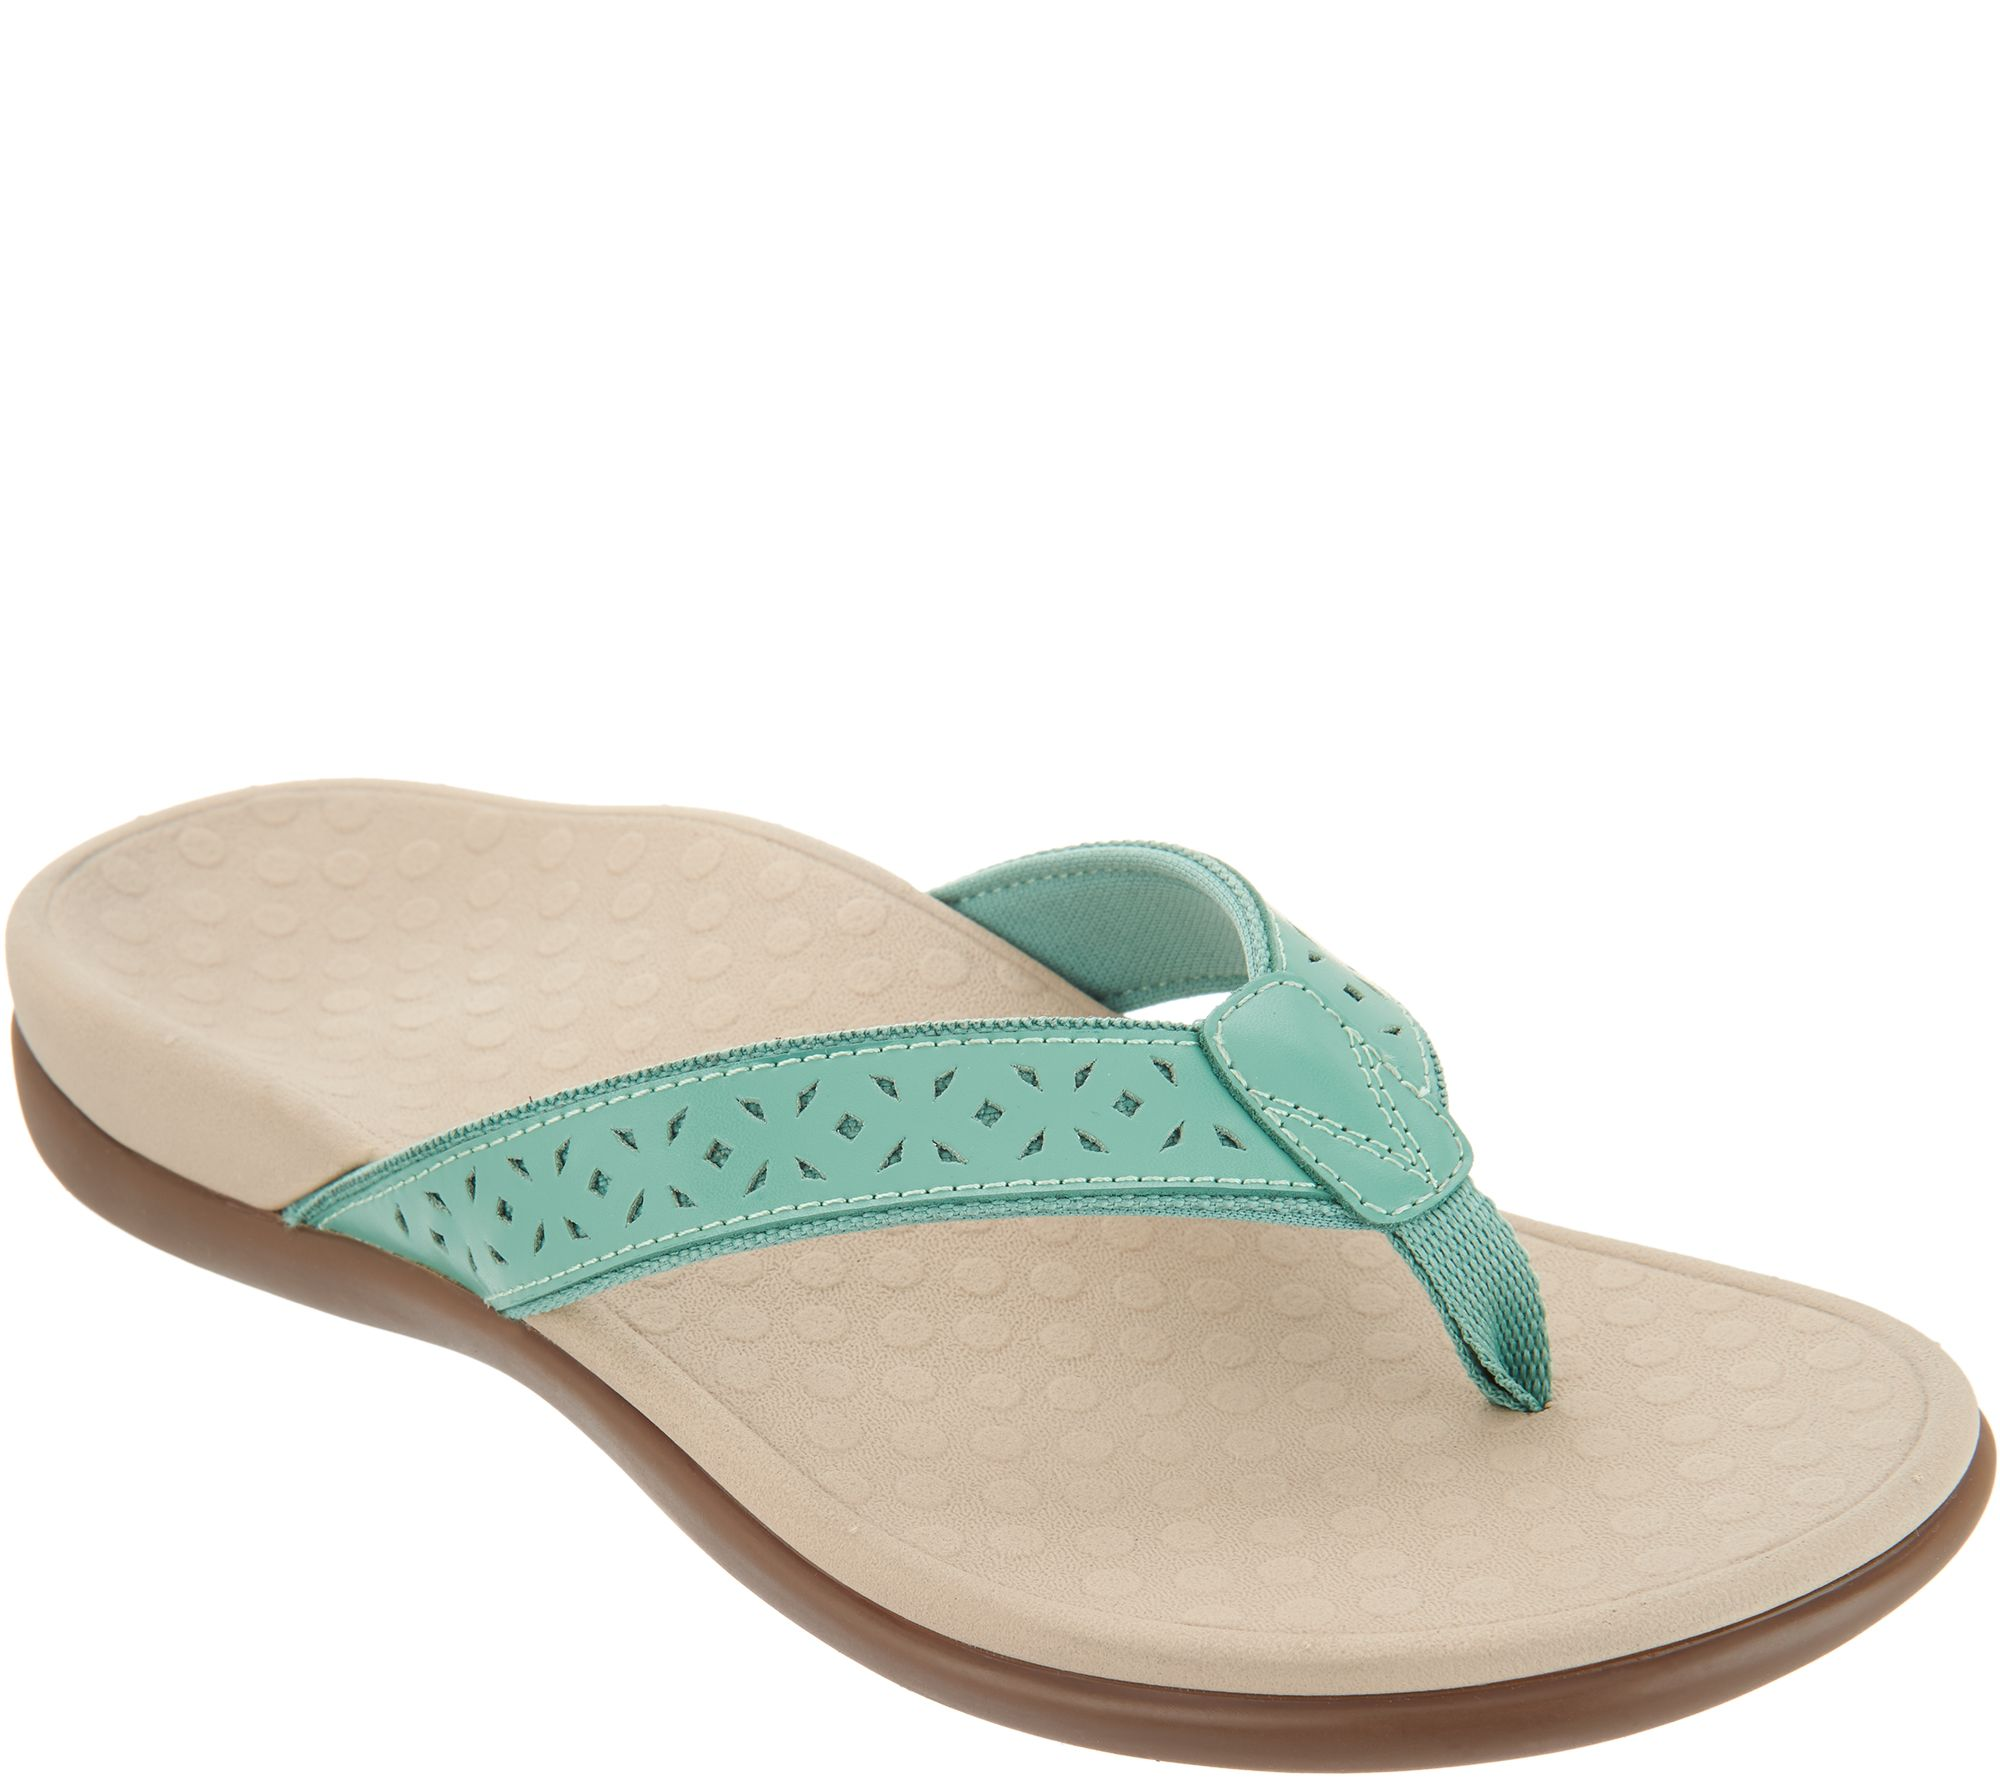 47c028ded28 Vionic Leather Thong Sandals - Tide Anniversary - Page 1 — QVC.com